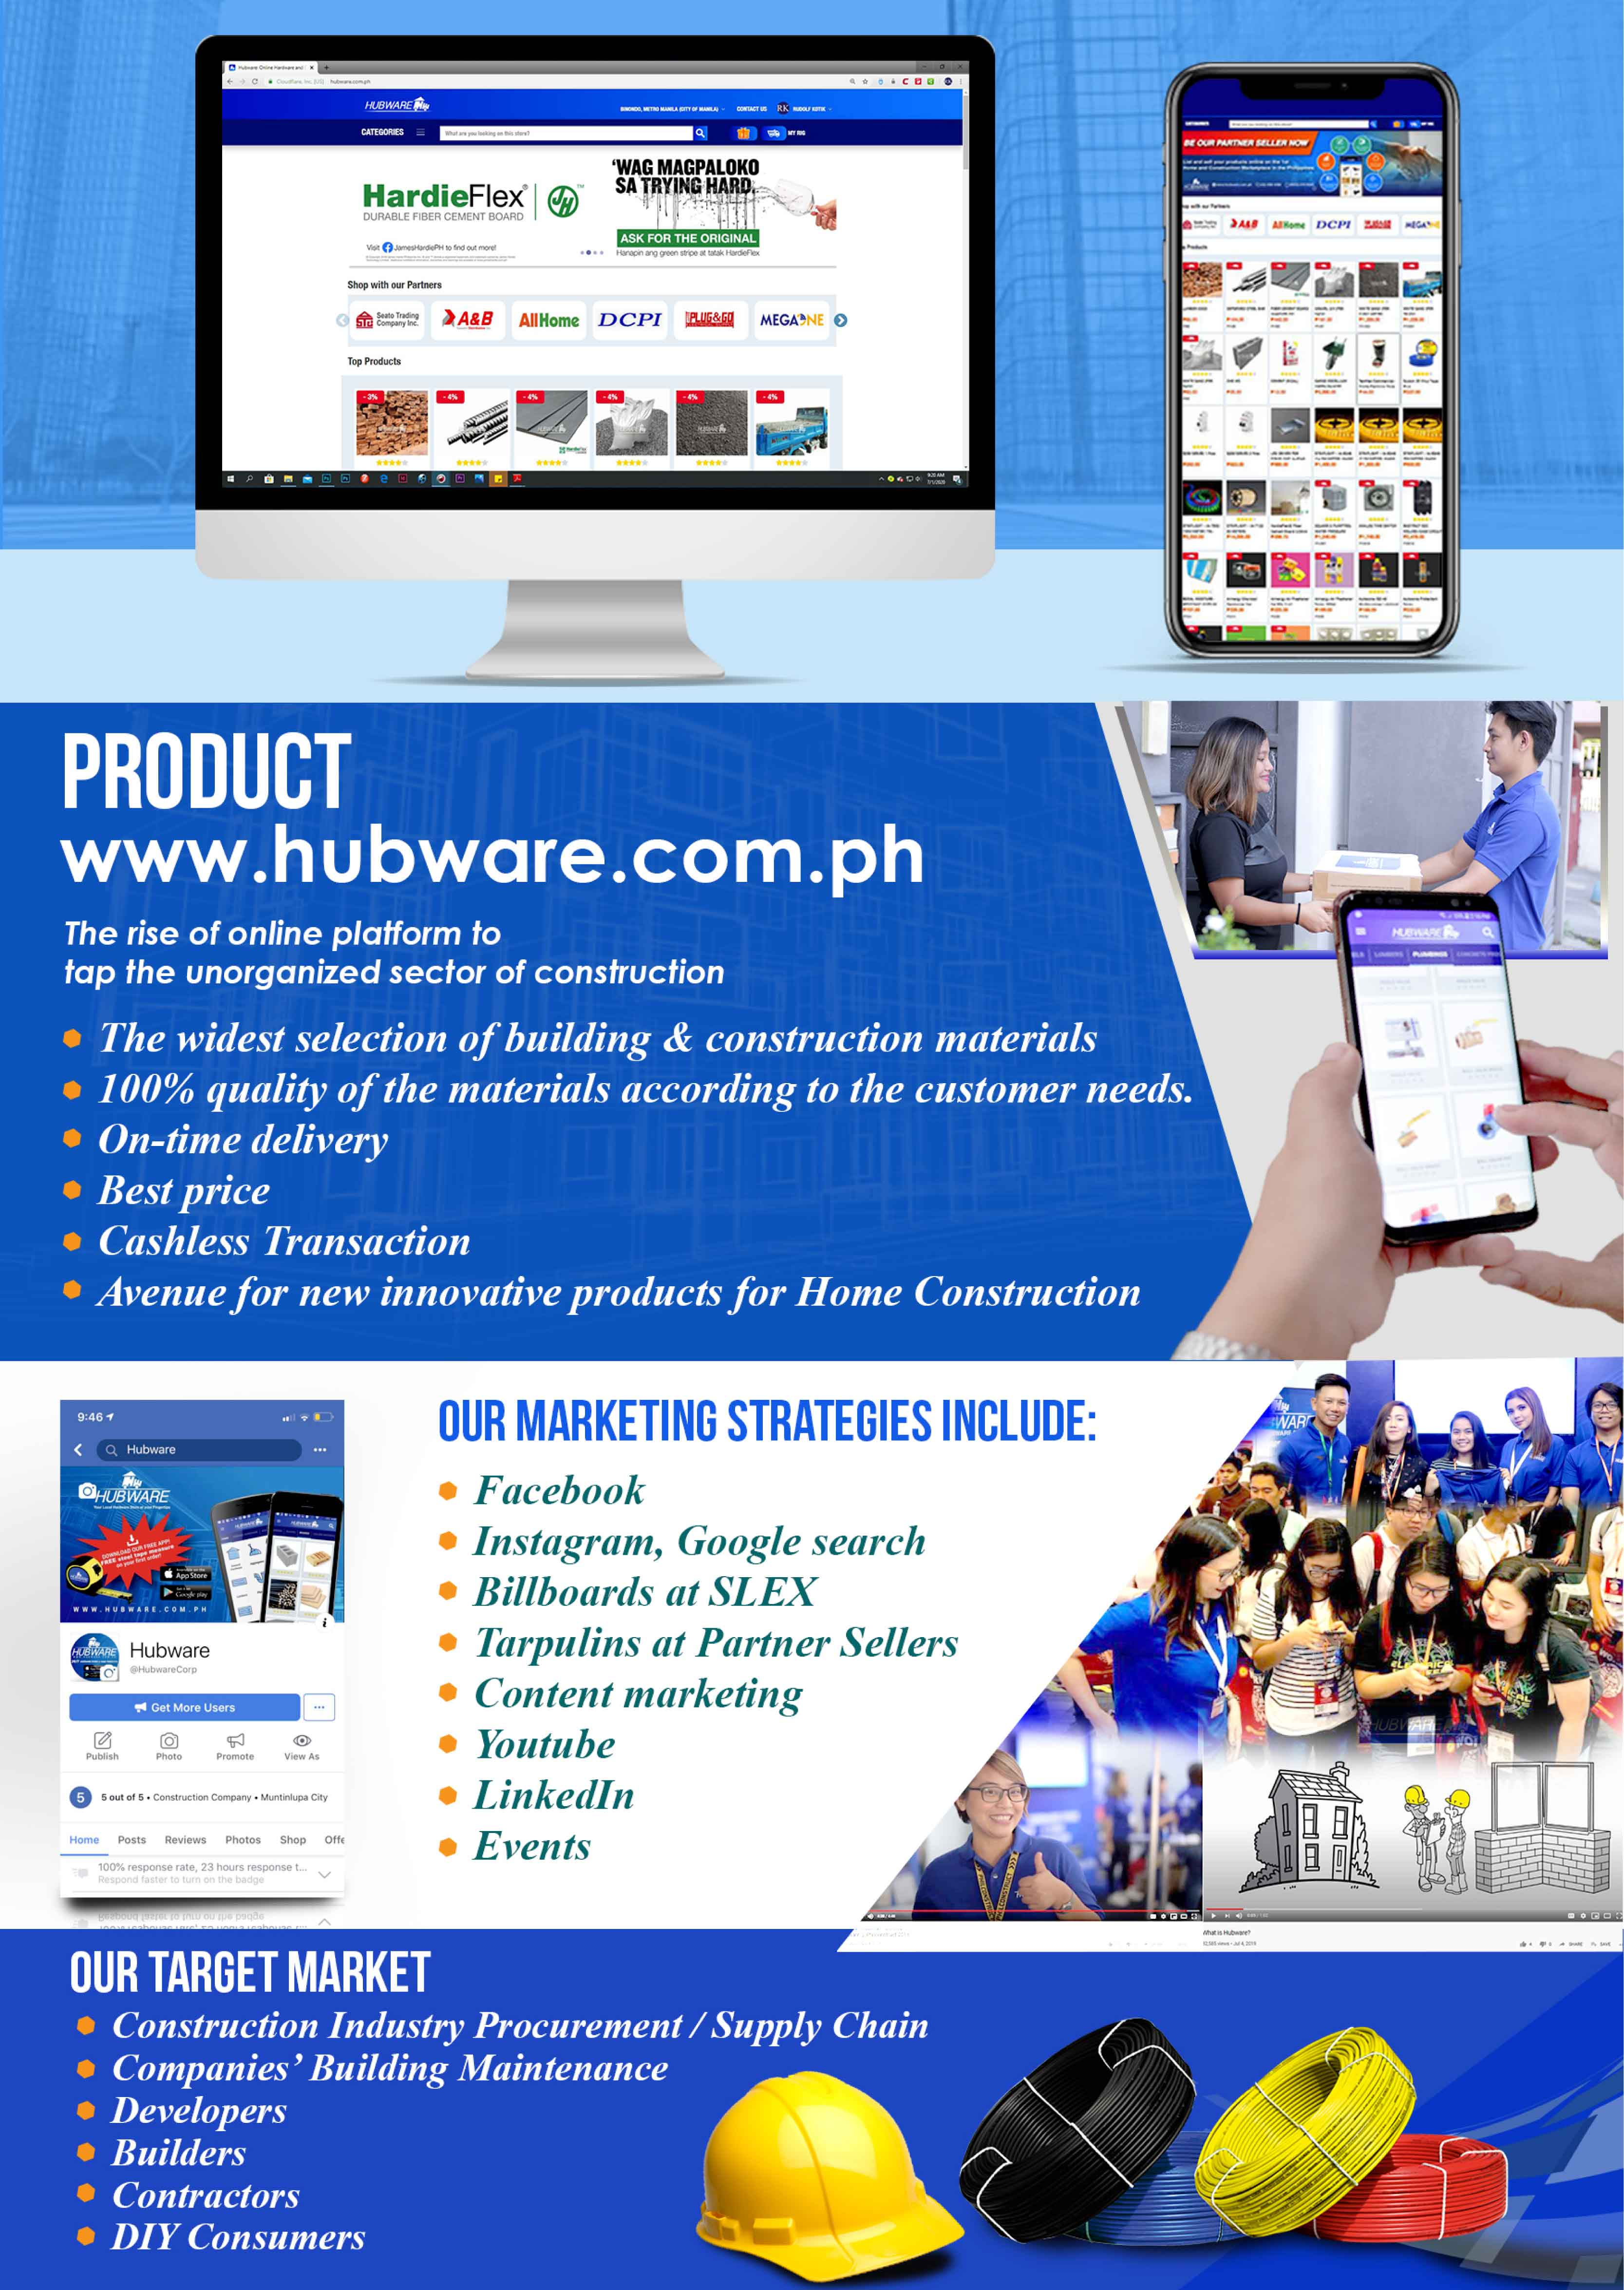 hubware - products & services